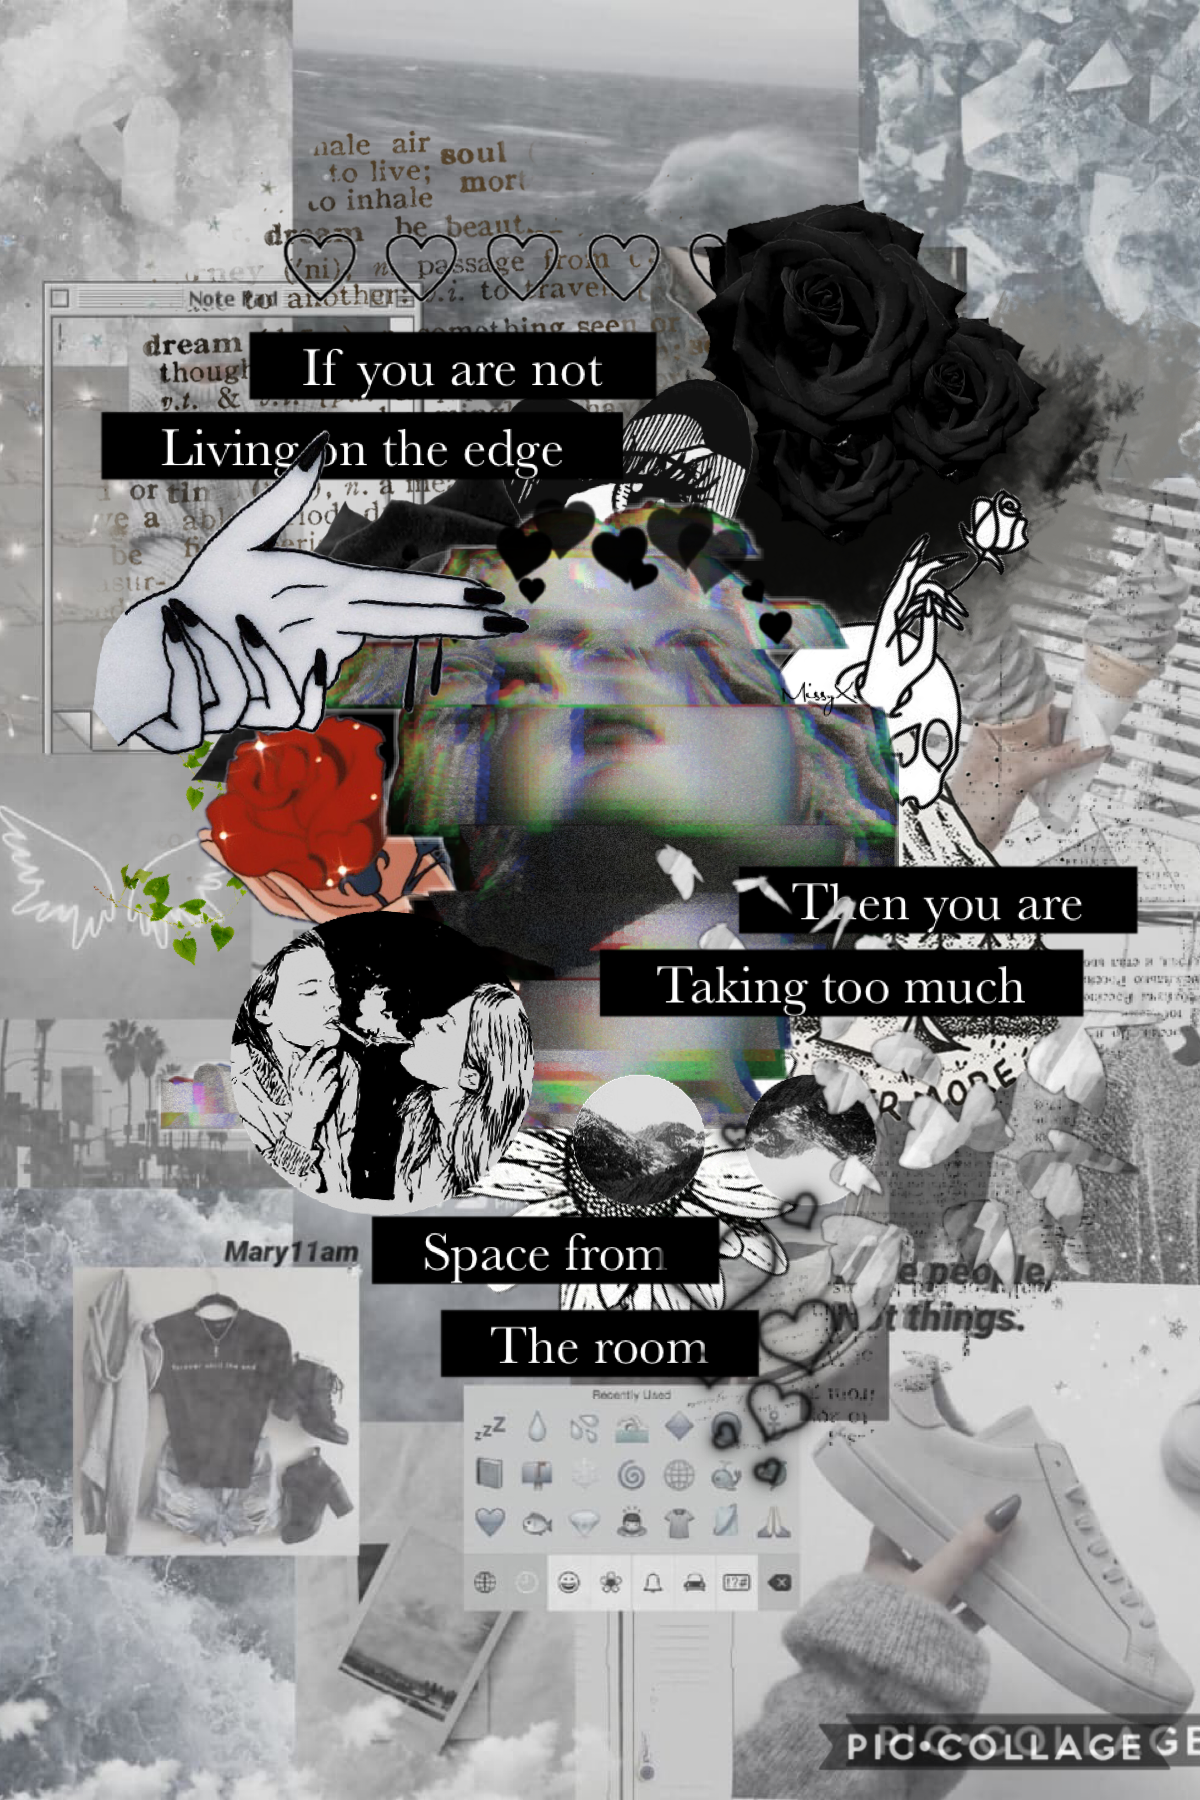 ✨Tappy✨ Used the incredible Mary11am's post as my background, thank you so so much for allowing me to use it💕💕 also inspired by GemQuotes i am trying to find some inspo and style for my next collage :))